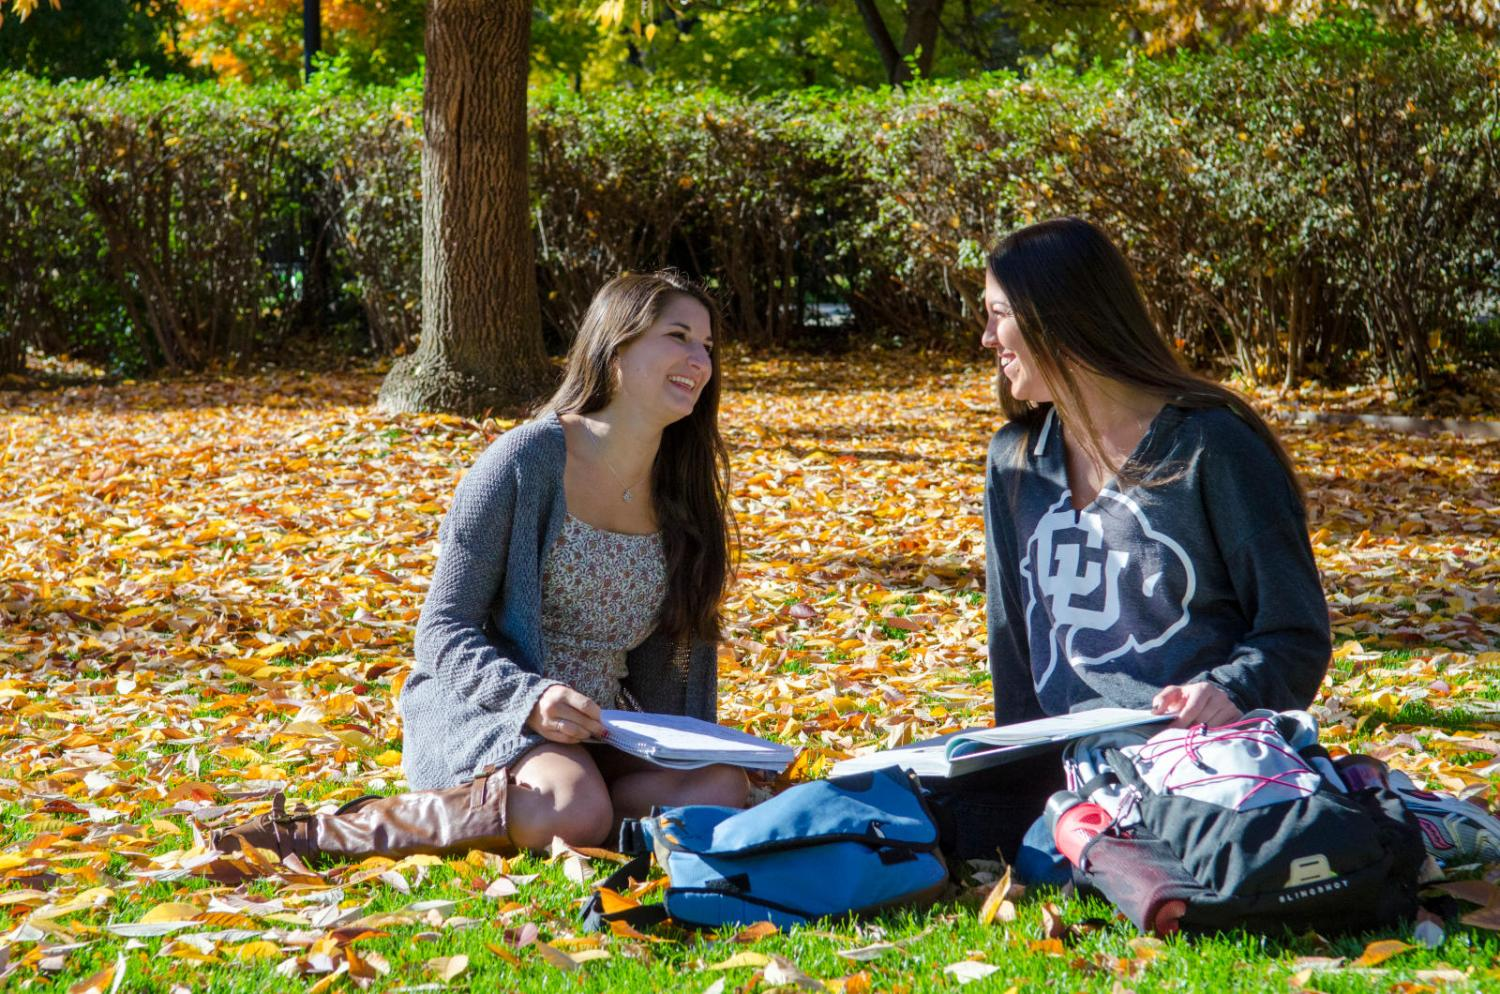 Students in the fall leaves